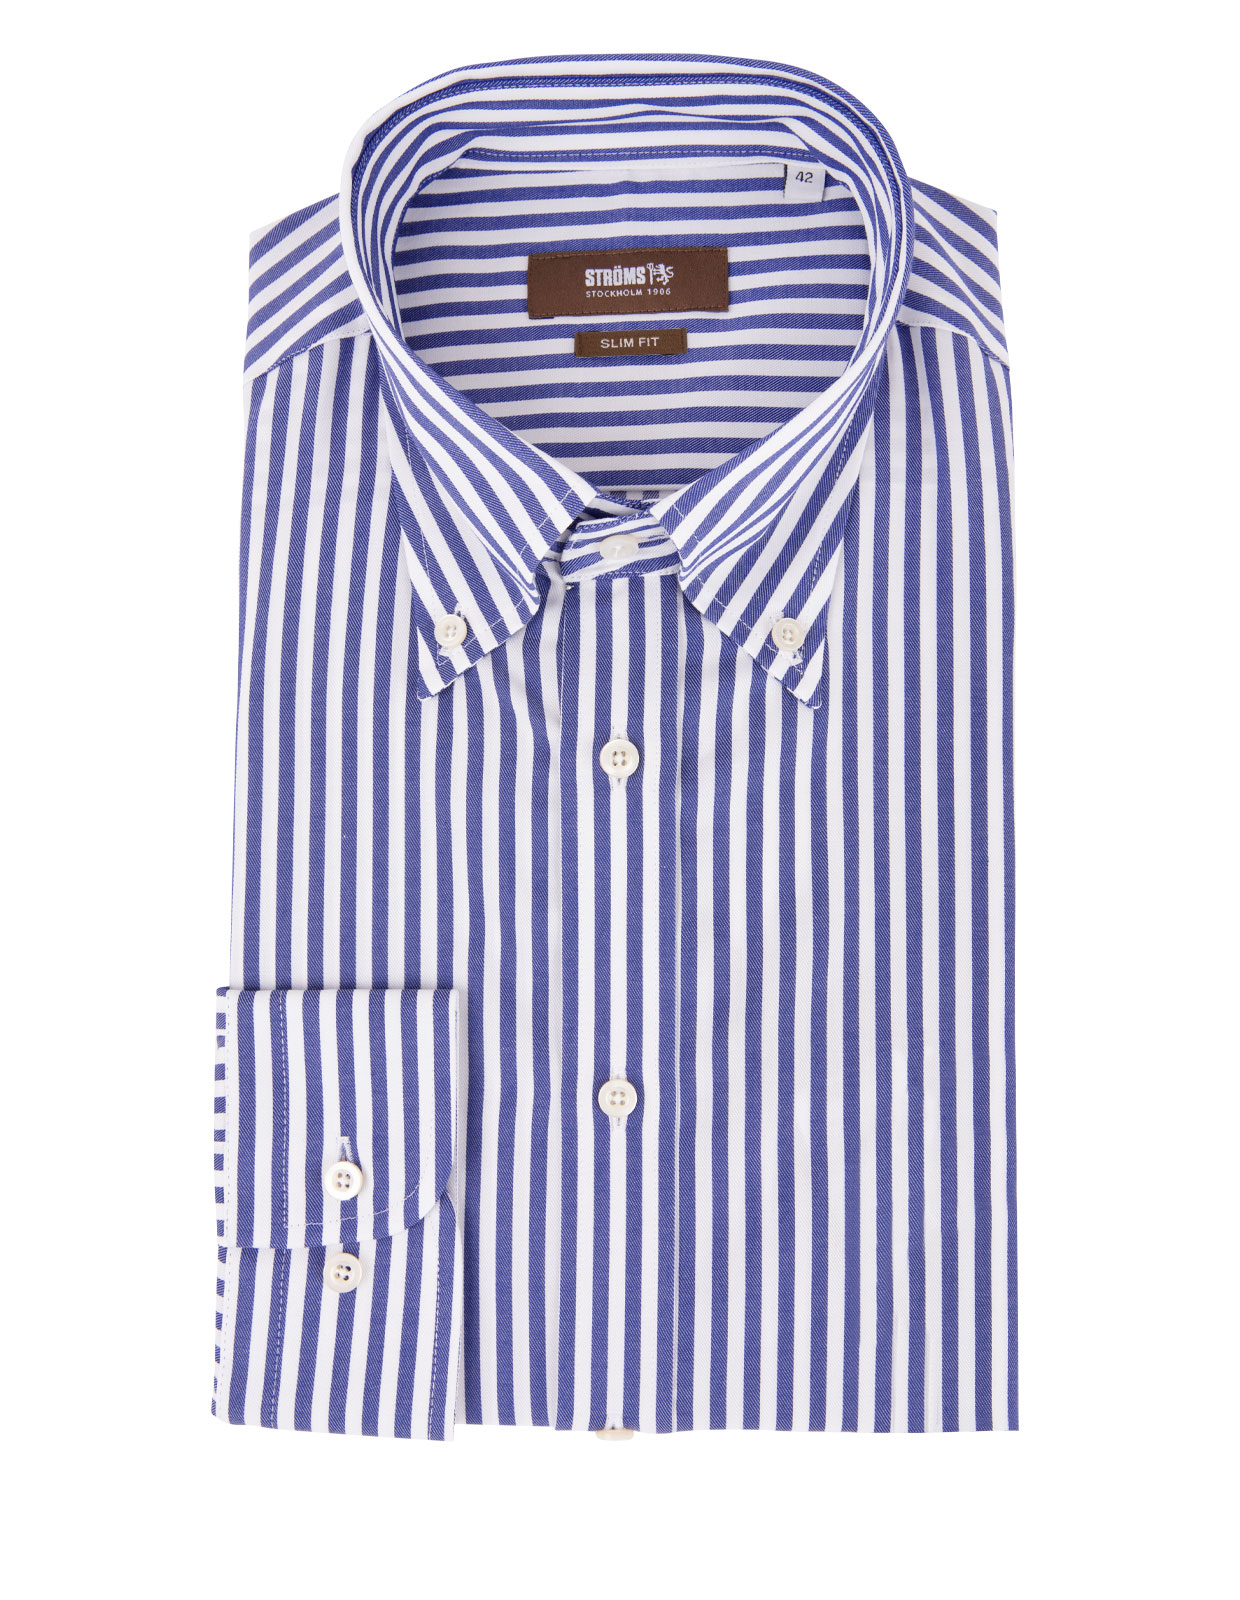 Slim Fit Button Down Cotton Shirt Stripe Blue/White